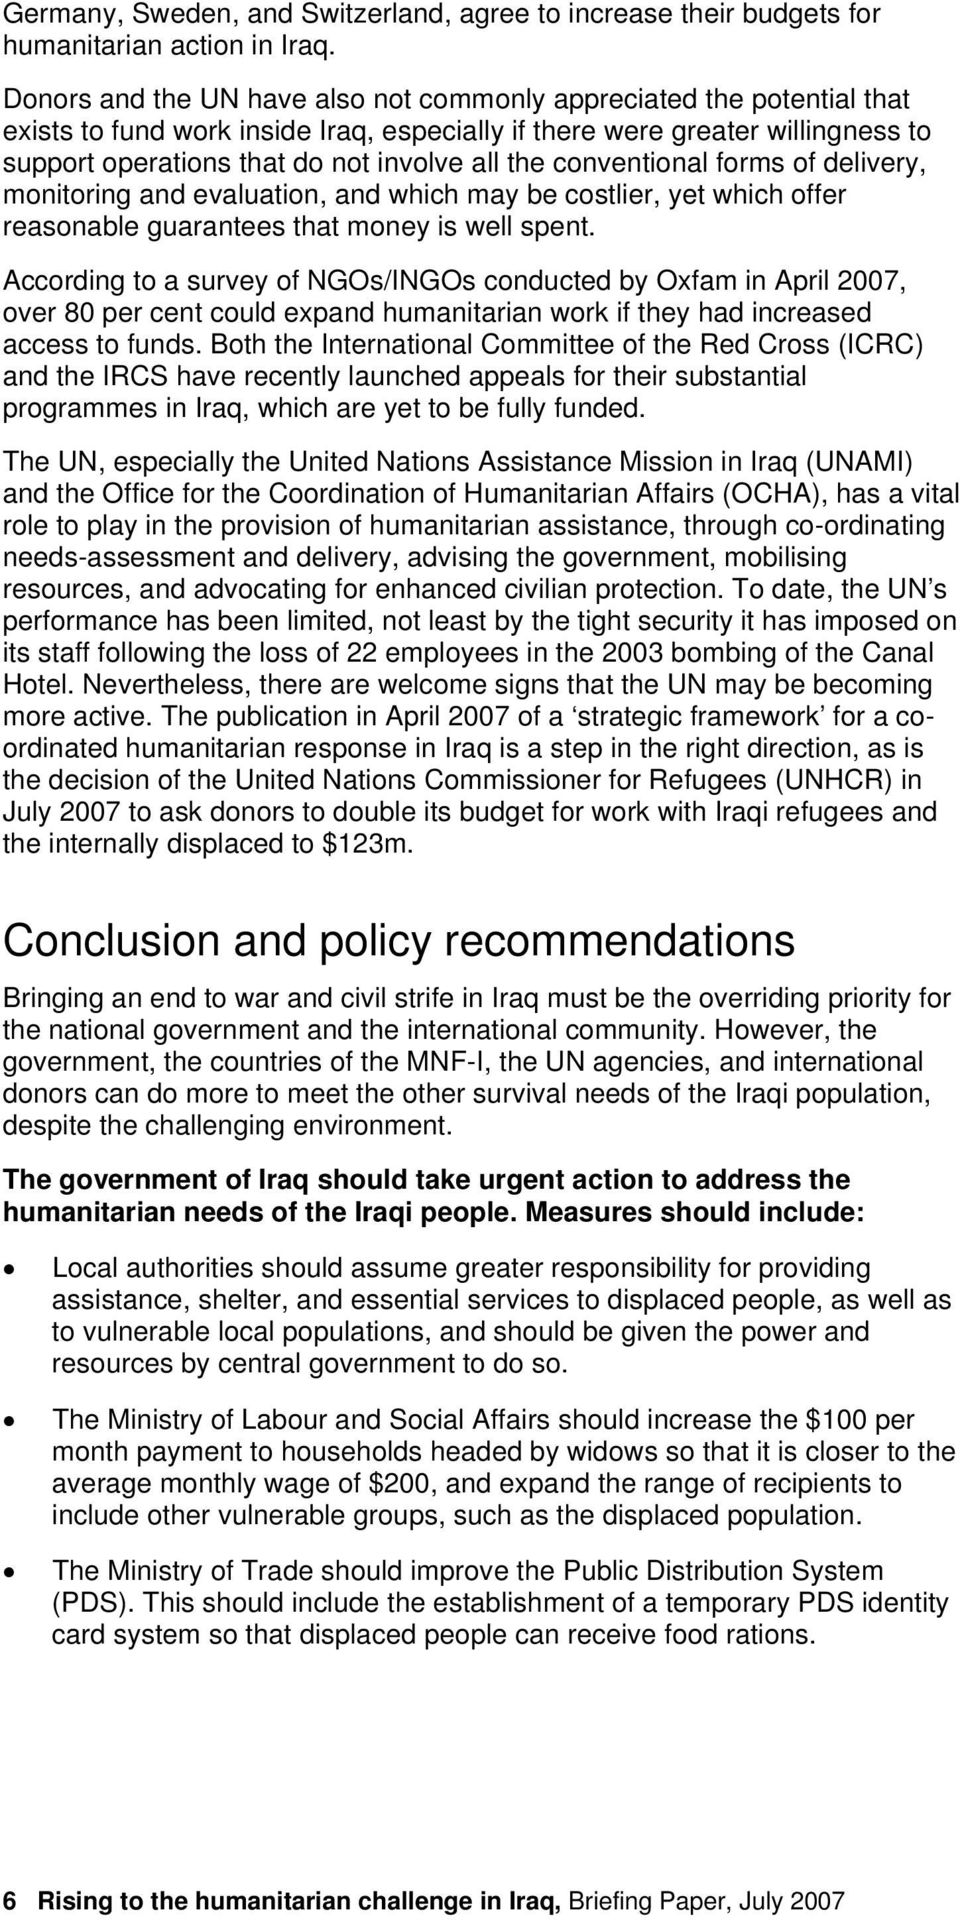 conventional forms of delivery, monitoring and evaluation, and which may be costlier, yet which offer reasonable guarantees that money is well spent.